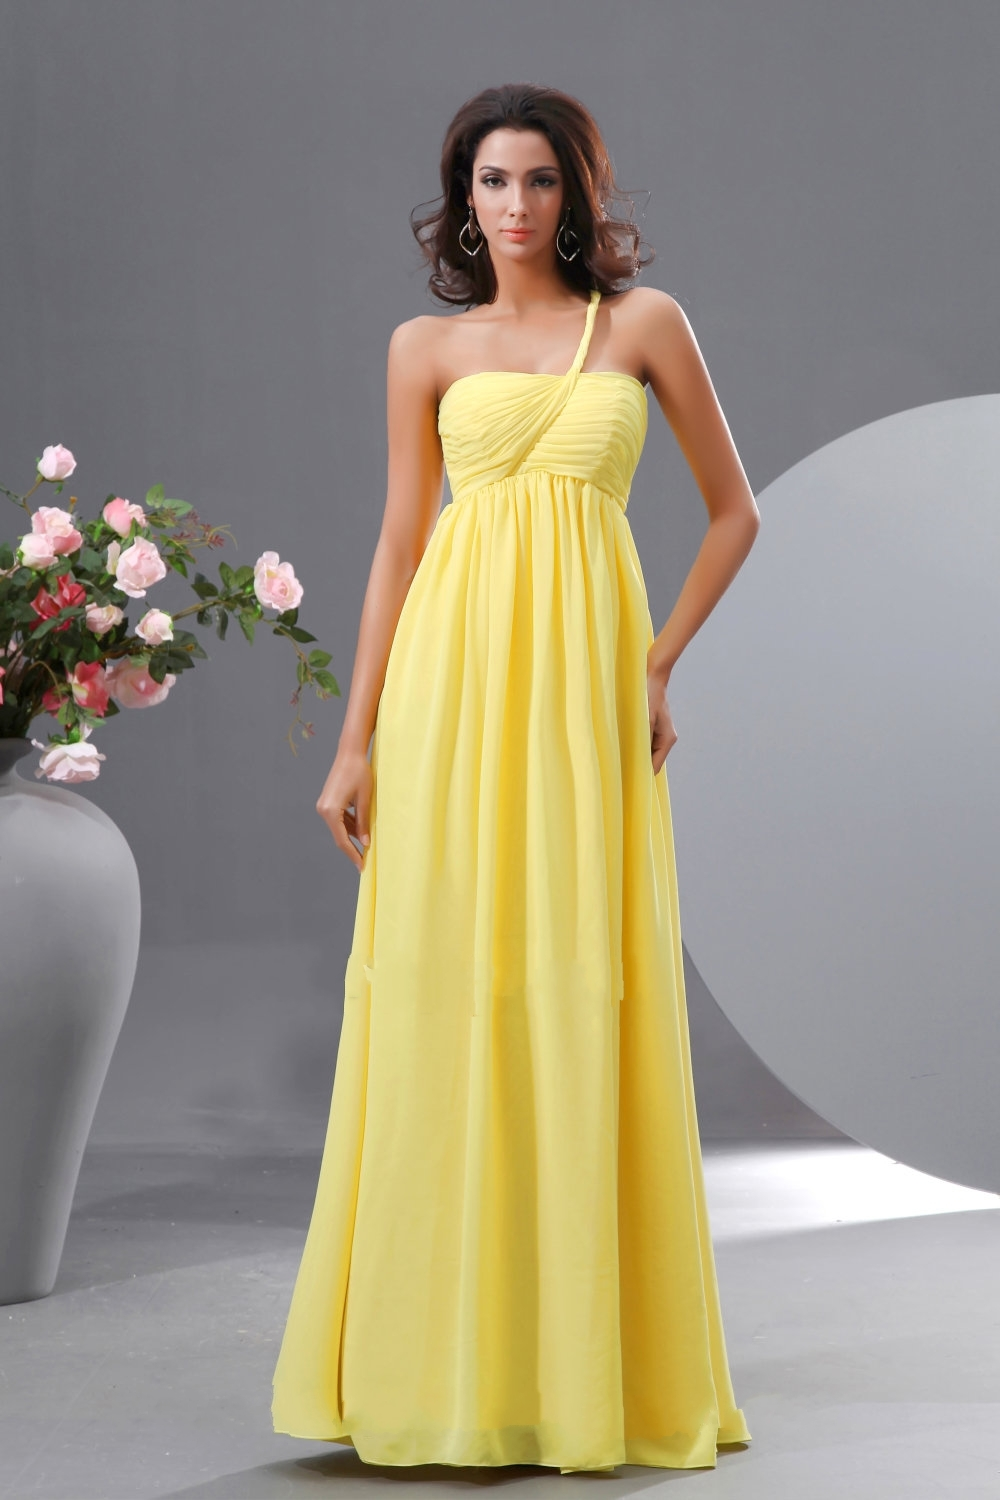 Yellow bridesmaid dresses dressed up girl